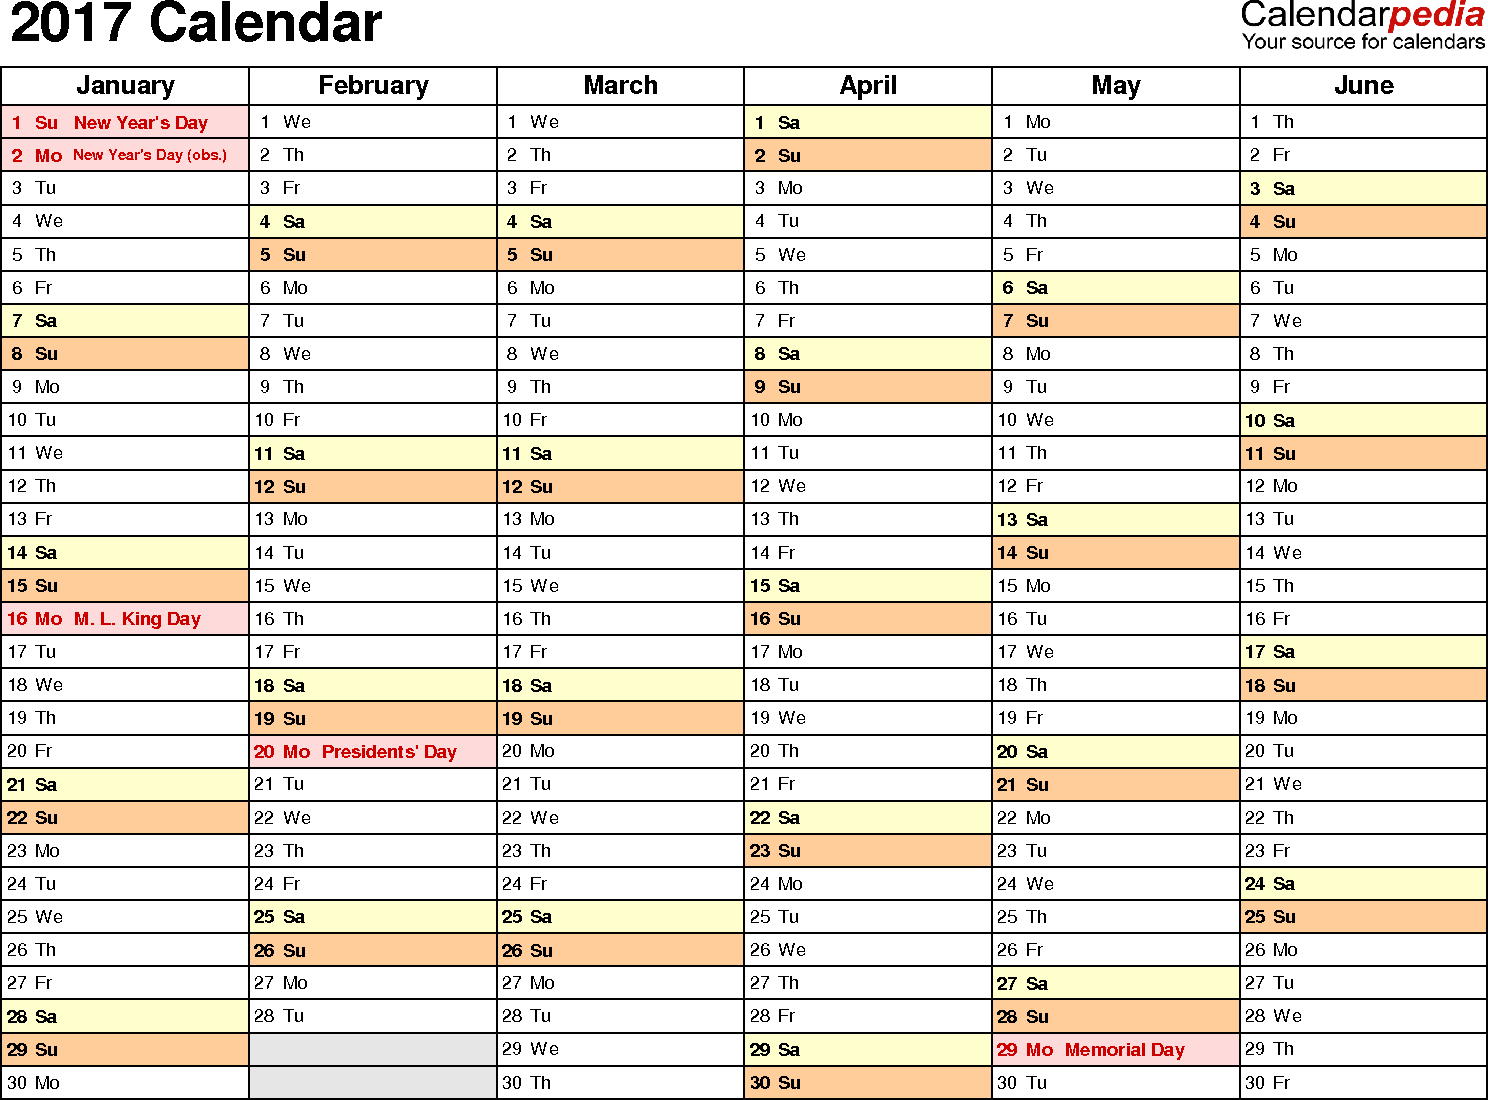 Ediblewildsus  Scenic  Calendar  Download  Free Printable Excel Templates Xls With Likable Template   Calendar For Excel Months Horizontally  Pages Landscape Orientation With Breathtaking Excel Password Breaker Macro Also Excel Date Day Of Week In Addition Drop Down List On Excel And Microsoft Office Excel Cannot Access The File As Well As Pareto Chart On Excel Additionally Excel Correlation Table From Calendarpediacom With Ediblewildsus  Likable  Calendar  Download  Free Printable Excel Templates Xls With Breathtaking Template   Calendar For Excel Months Horizontally  Pages Landscape Orientation And Scenic Excel Password Breaker Macro Also Excel Date Day Of Week In Addition Drop Down List On Excel From Calendarpediacom